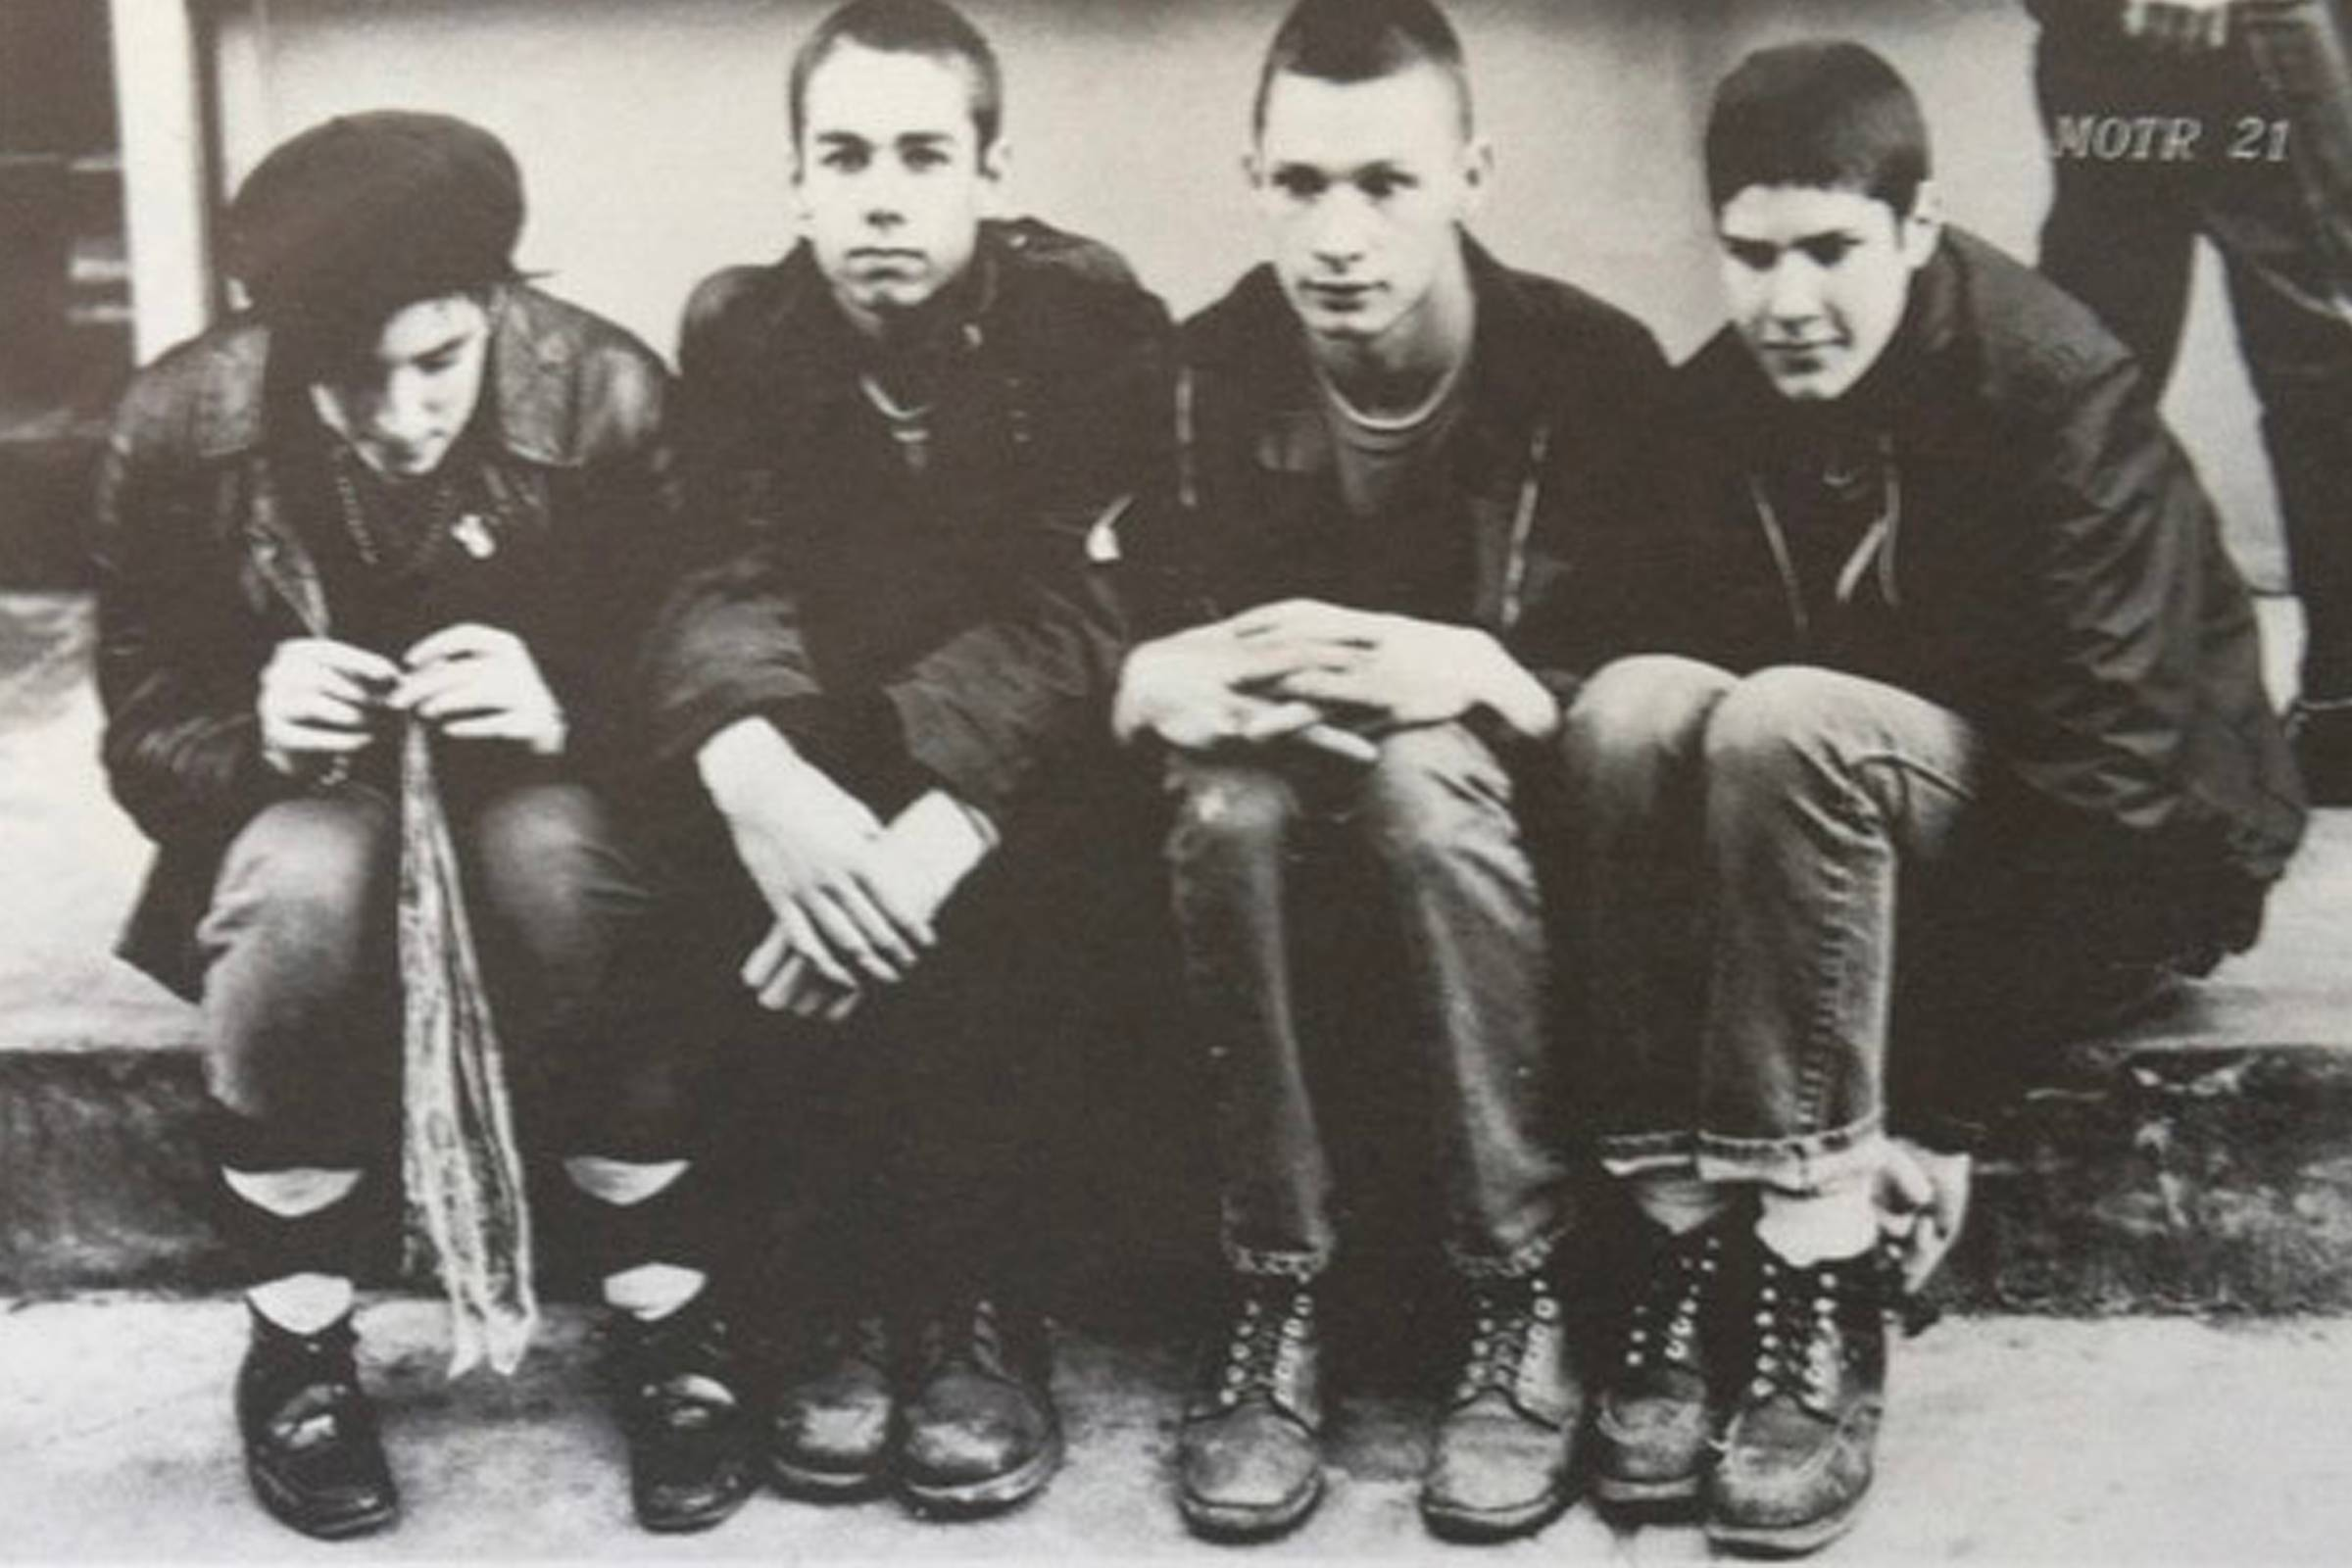 The Young Aborigines, a precursor to what would become The Beastie Boys, in 1982